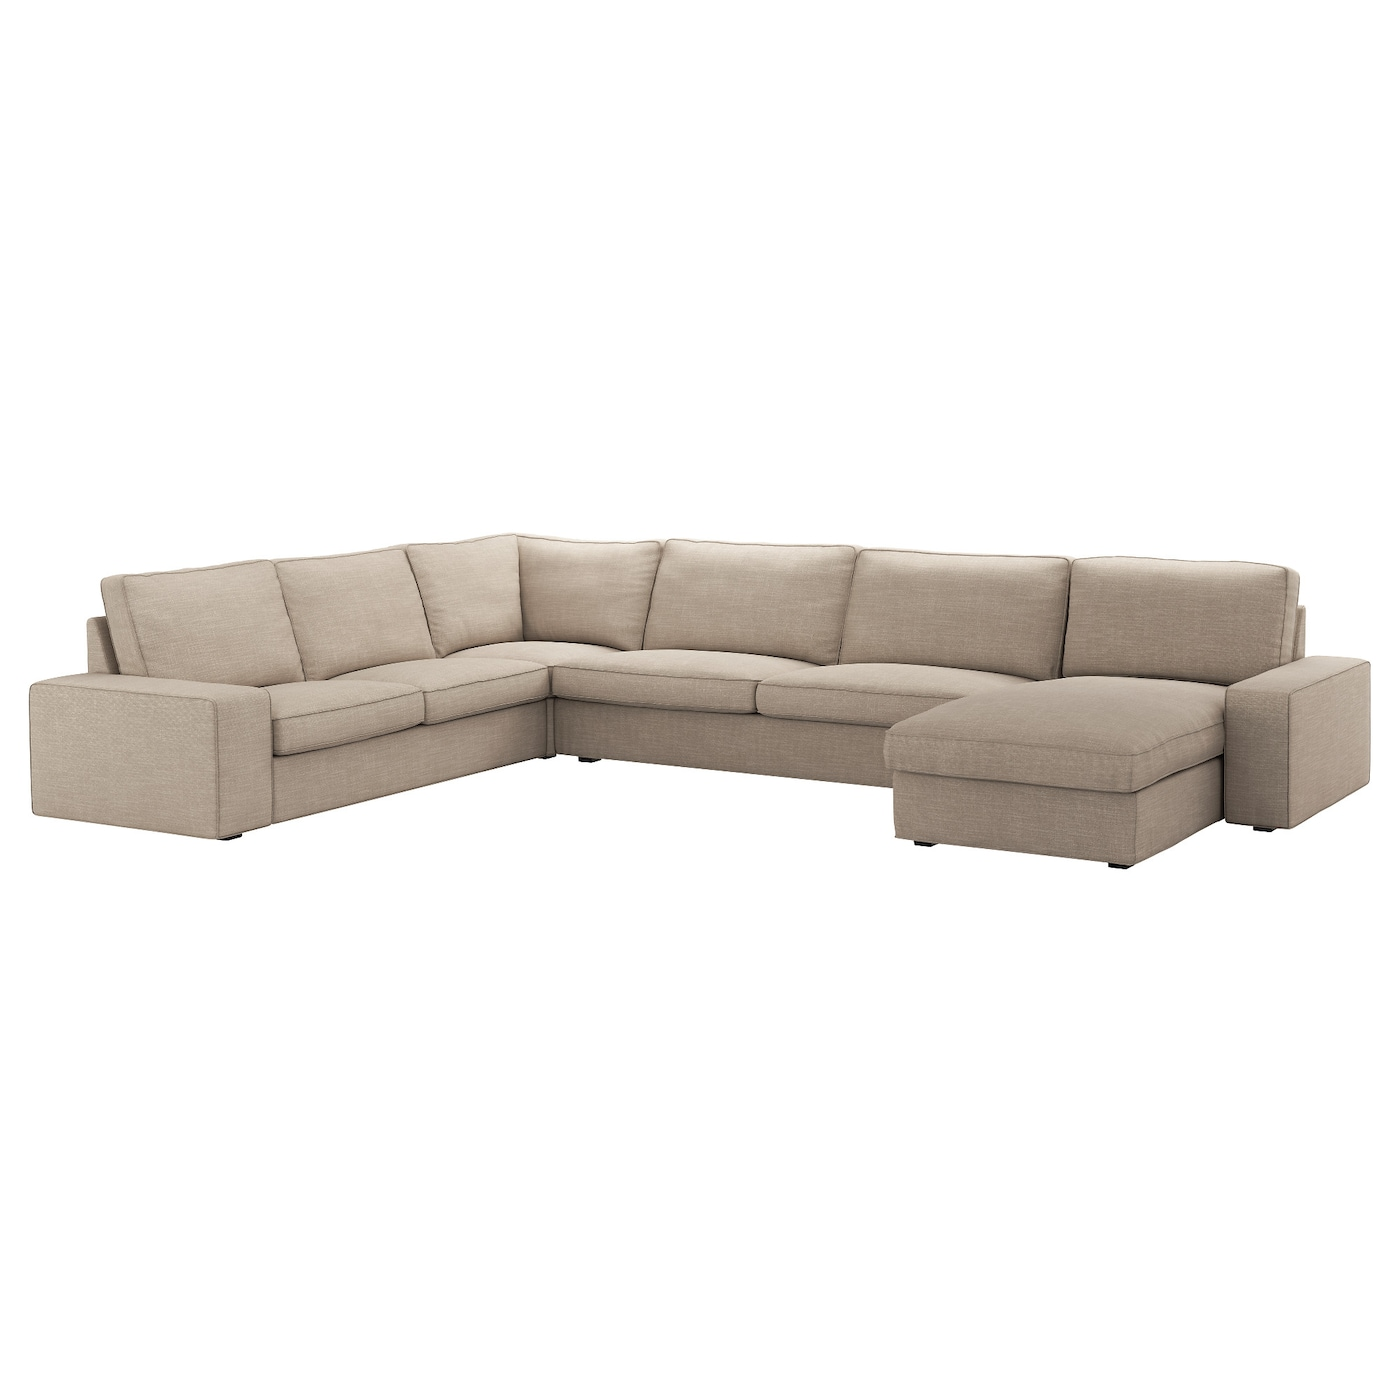 kivik corner sofa 23 32 and chaise longue hillared beige